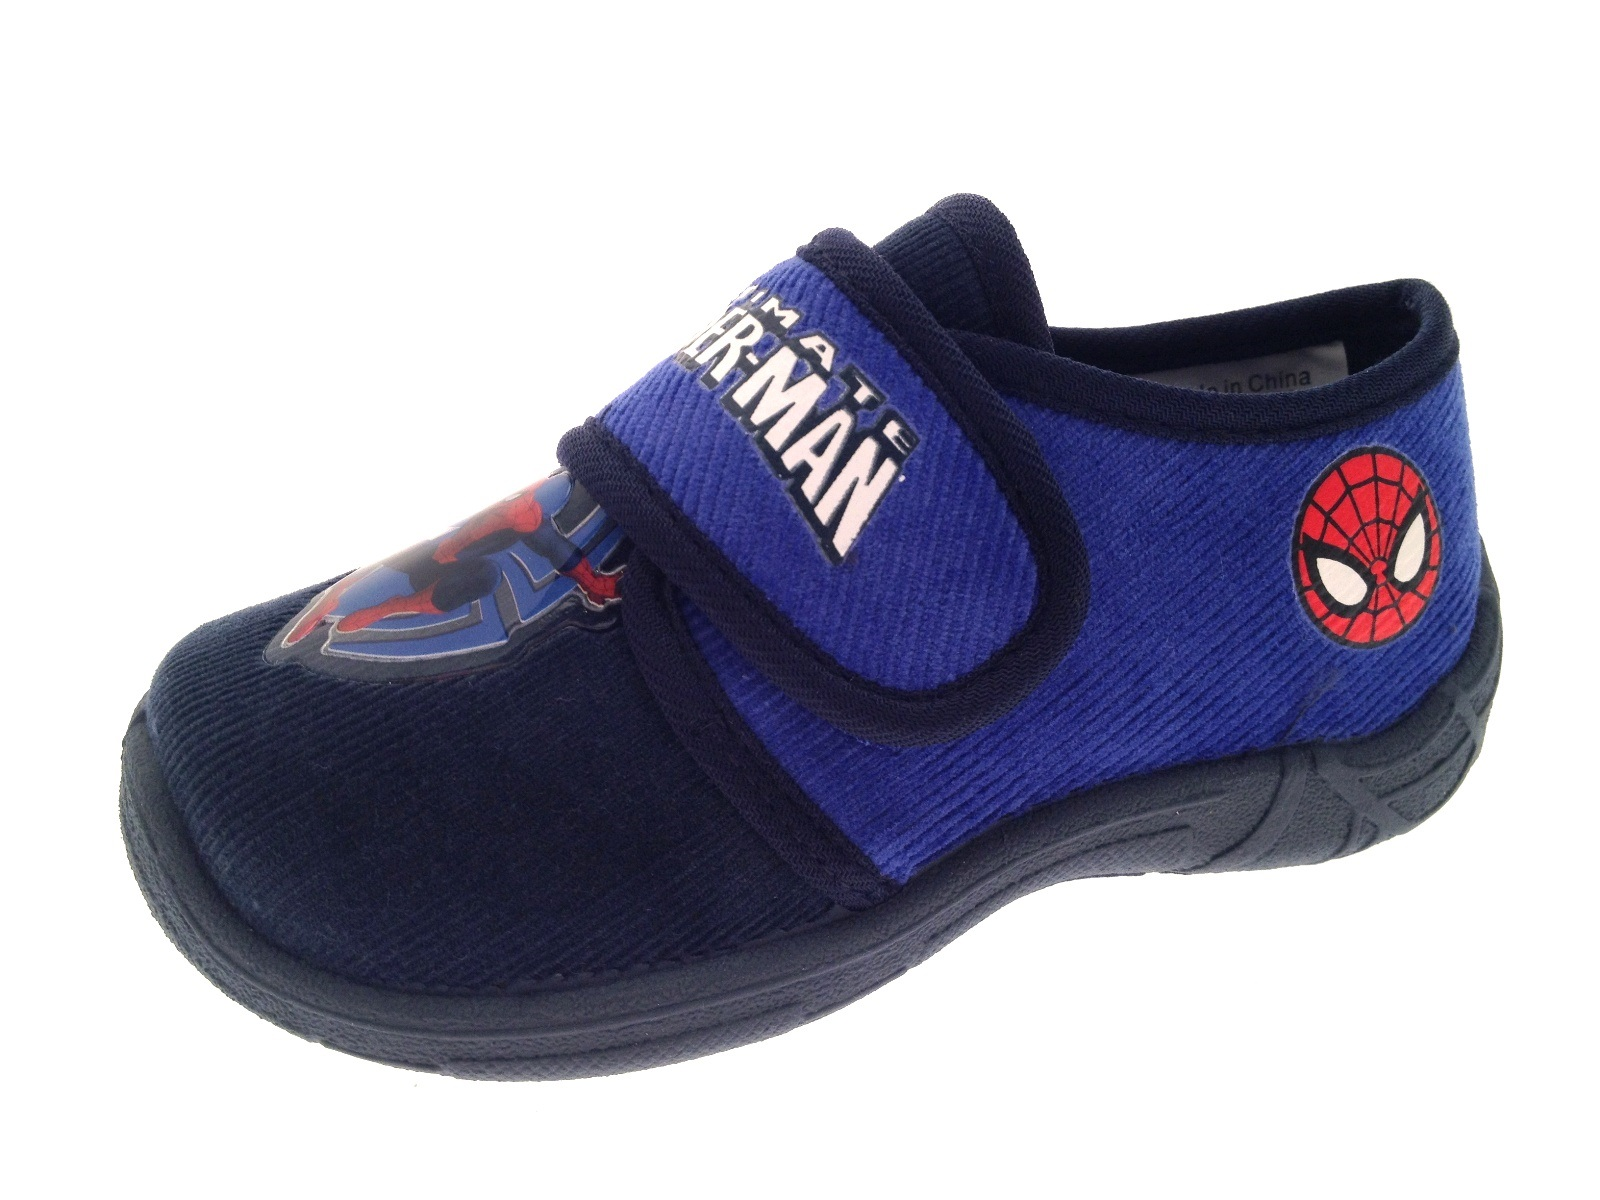 Shop Spider-Man Kids' Character Shoes at Payless to find the lowest prices on shoes. Free Shipping +$25, Free Returns at any Payless Store. Find kids' character shoes featuring Spider-Man at your ultimate friendly neighborhood shoe store Payless! Boys' Toddler Spider-Man Sport Sandal Ultimate Spider-Man. $ reg $ (6 reviews).